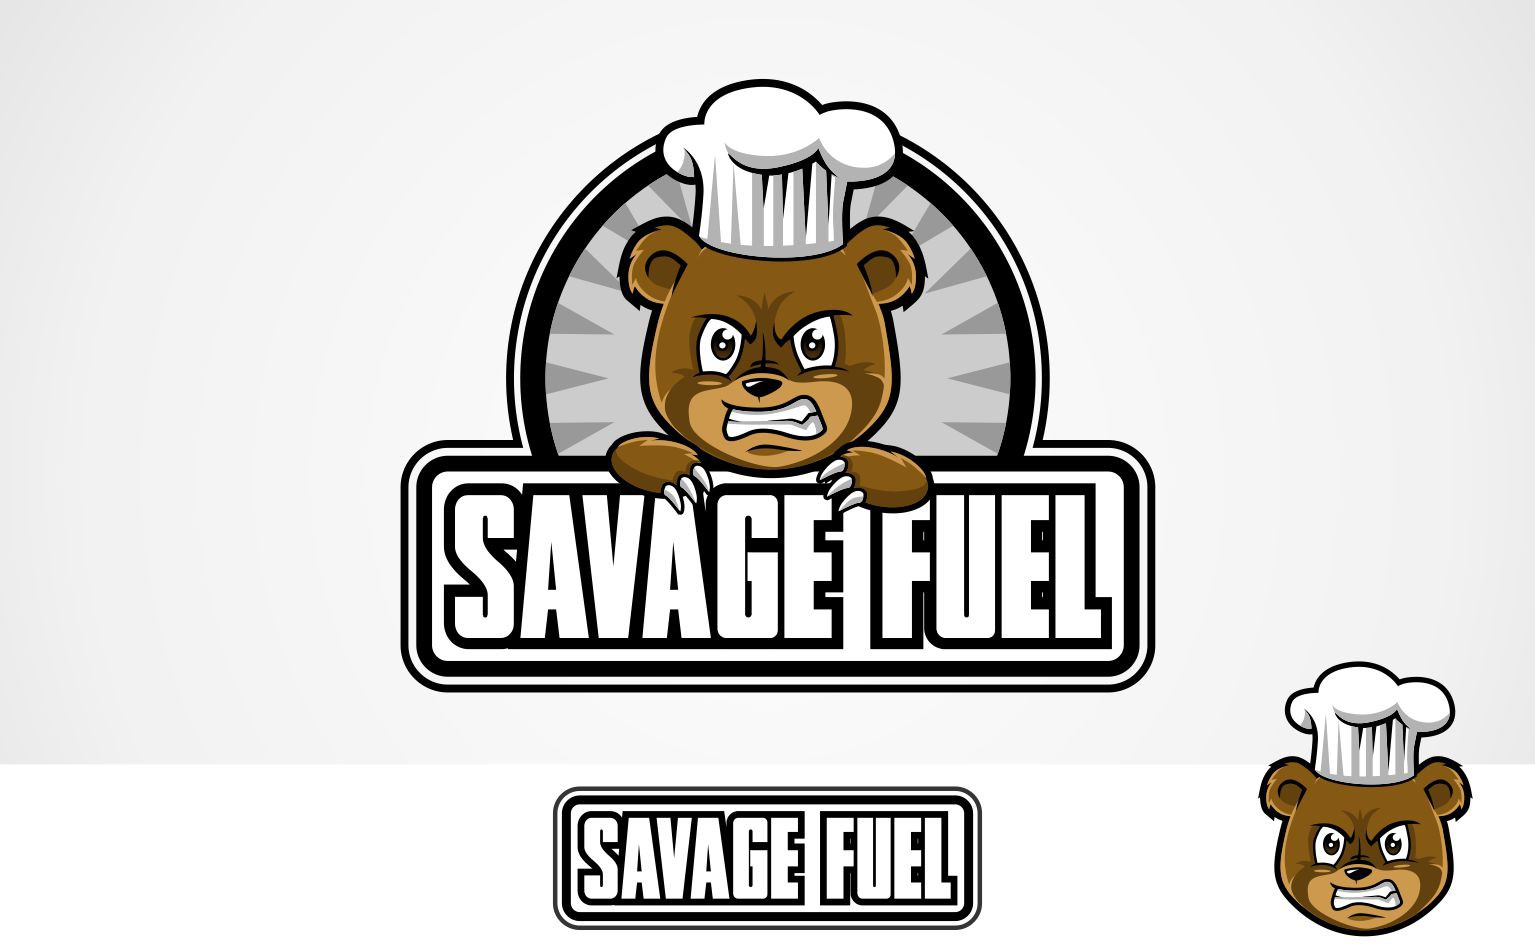 Cute but fierce bear cub logo wanted for Savage Fuel! Very detailed brief, take a look!